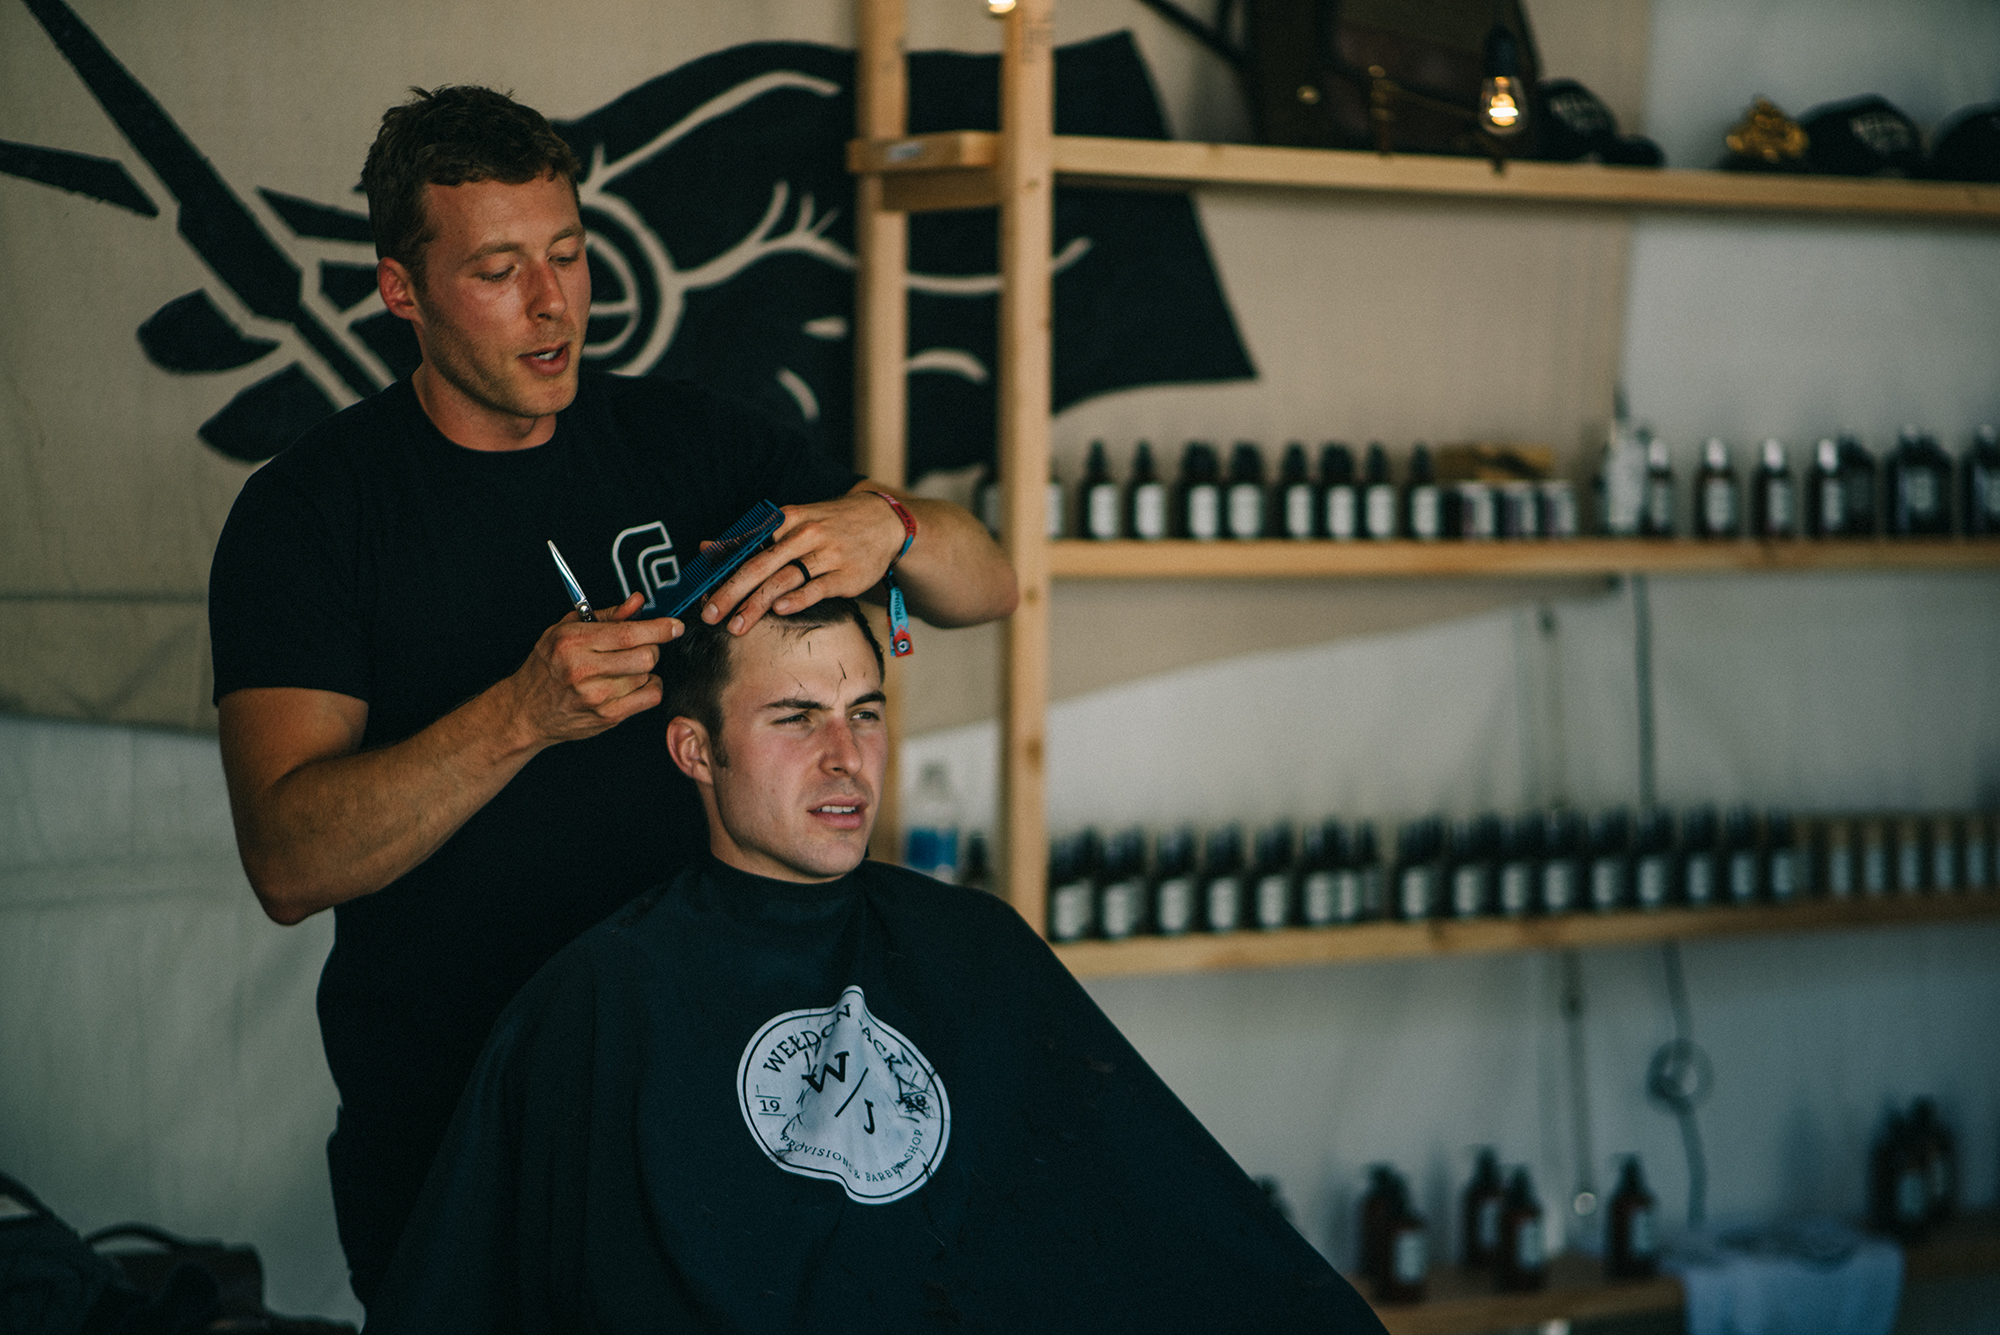 Hair cuts from our friends at Weldon Jack going on all weekend!